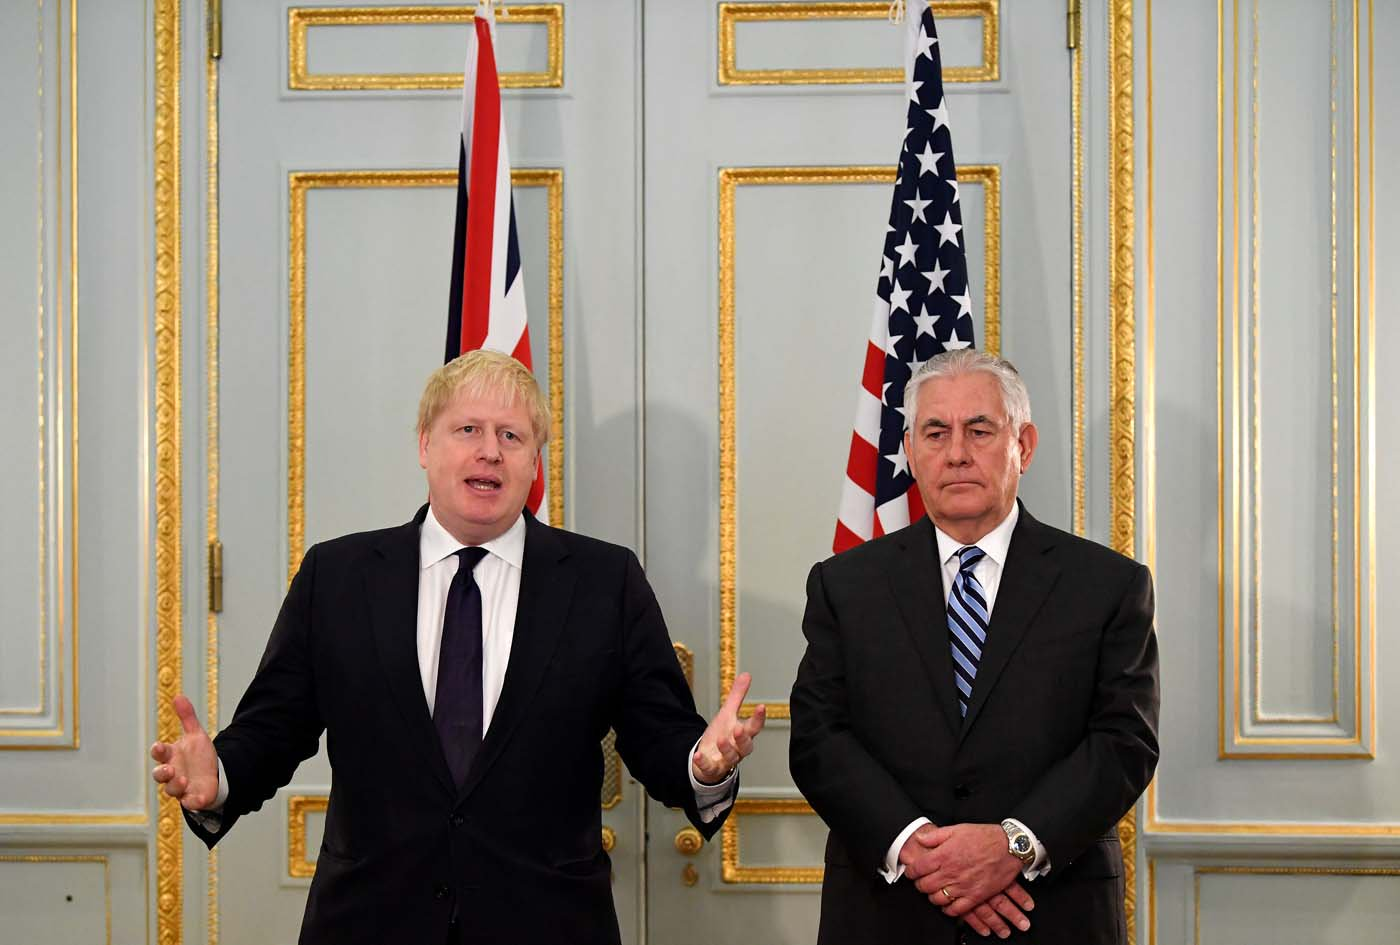 U.S. Secretary of State Rex Tillerson and Britain's Foreign Secretary Boris Johnson attend a press conference in London, January 22, 2018. REUTERS/Toby Melville